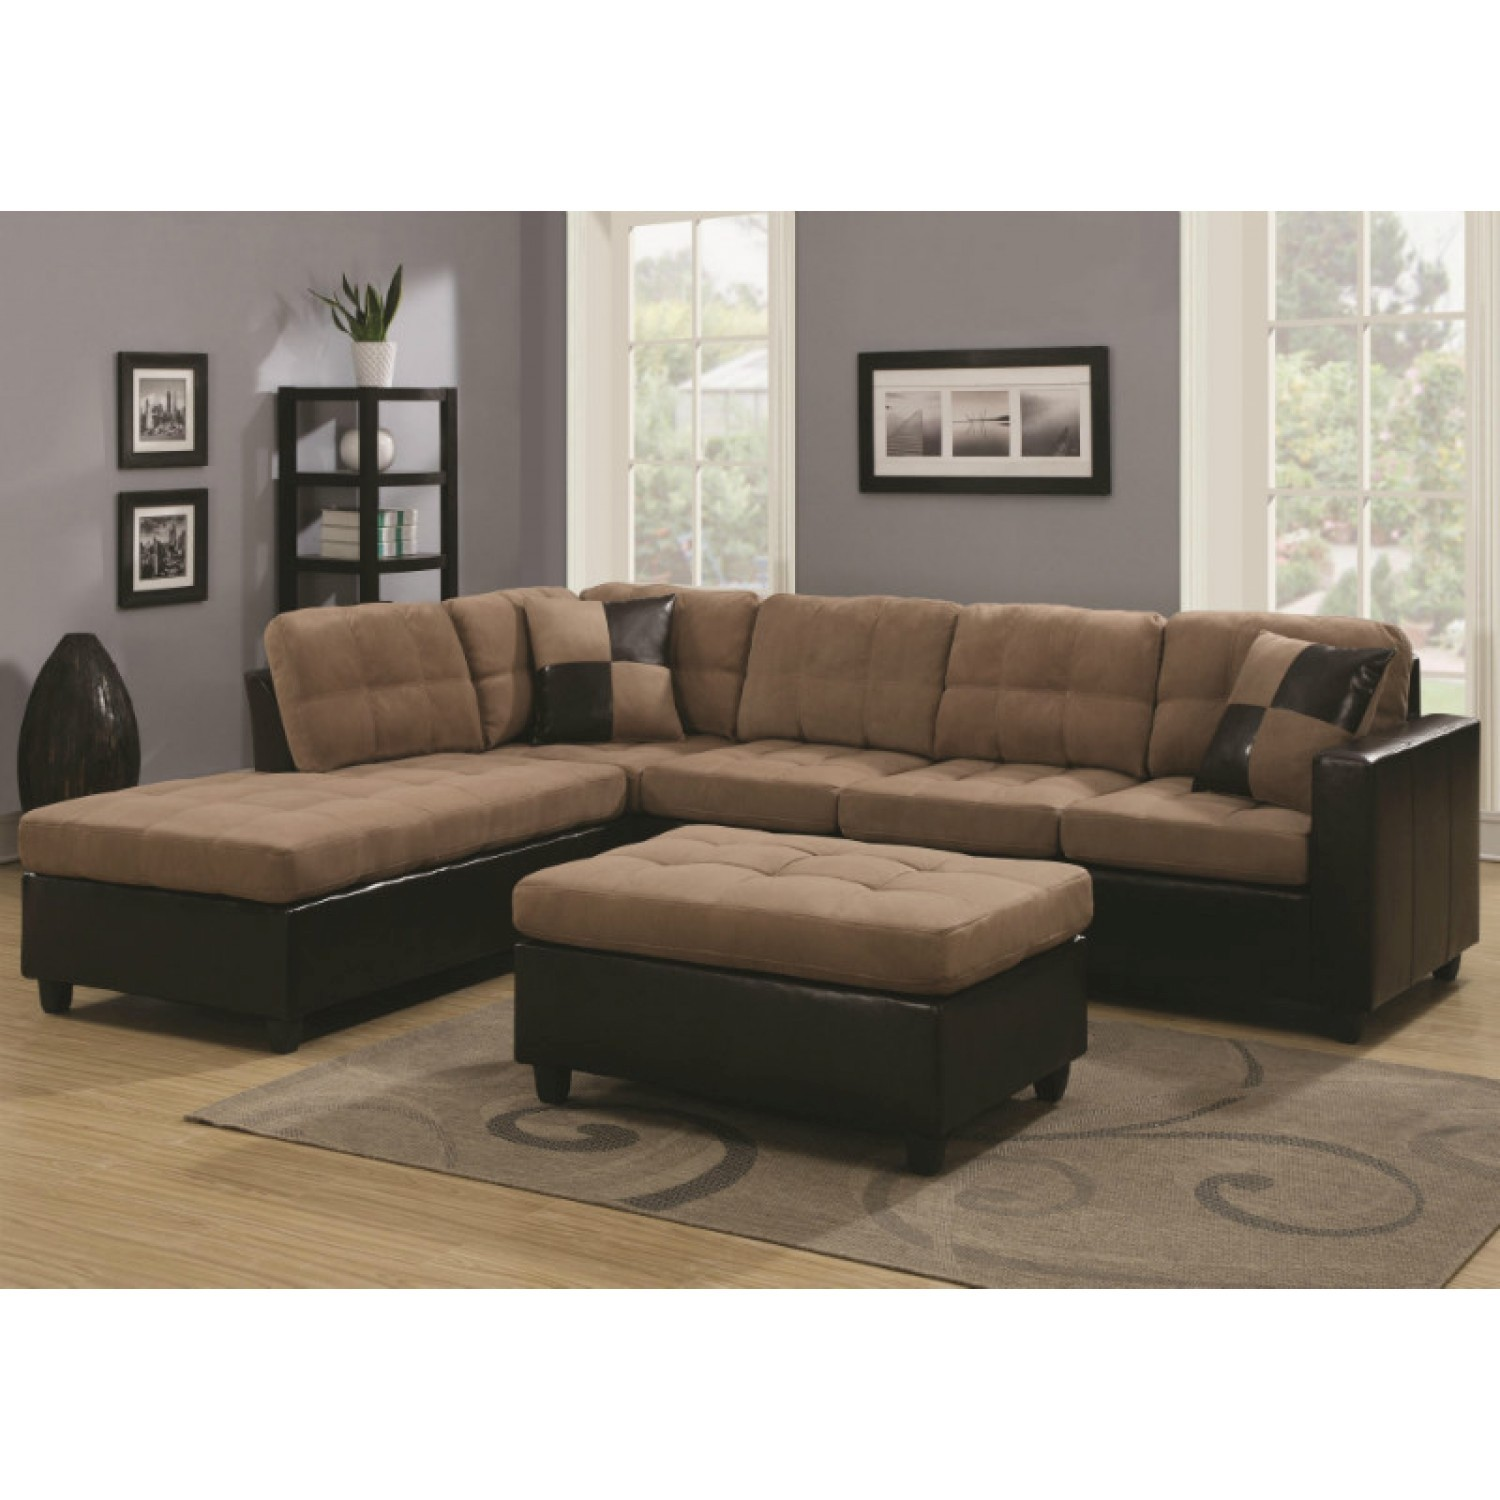 Sofas Near Me Stunning Cheap sofas Near Me sofa Stores Best Home Furniture Design Plan